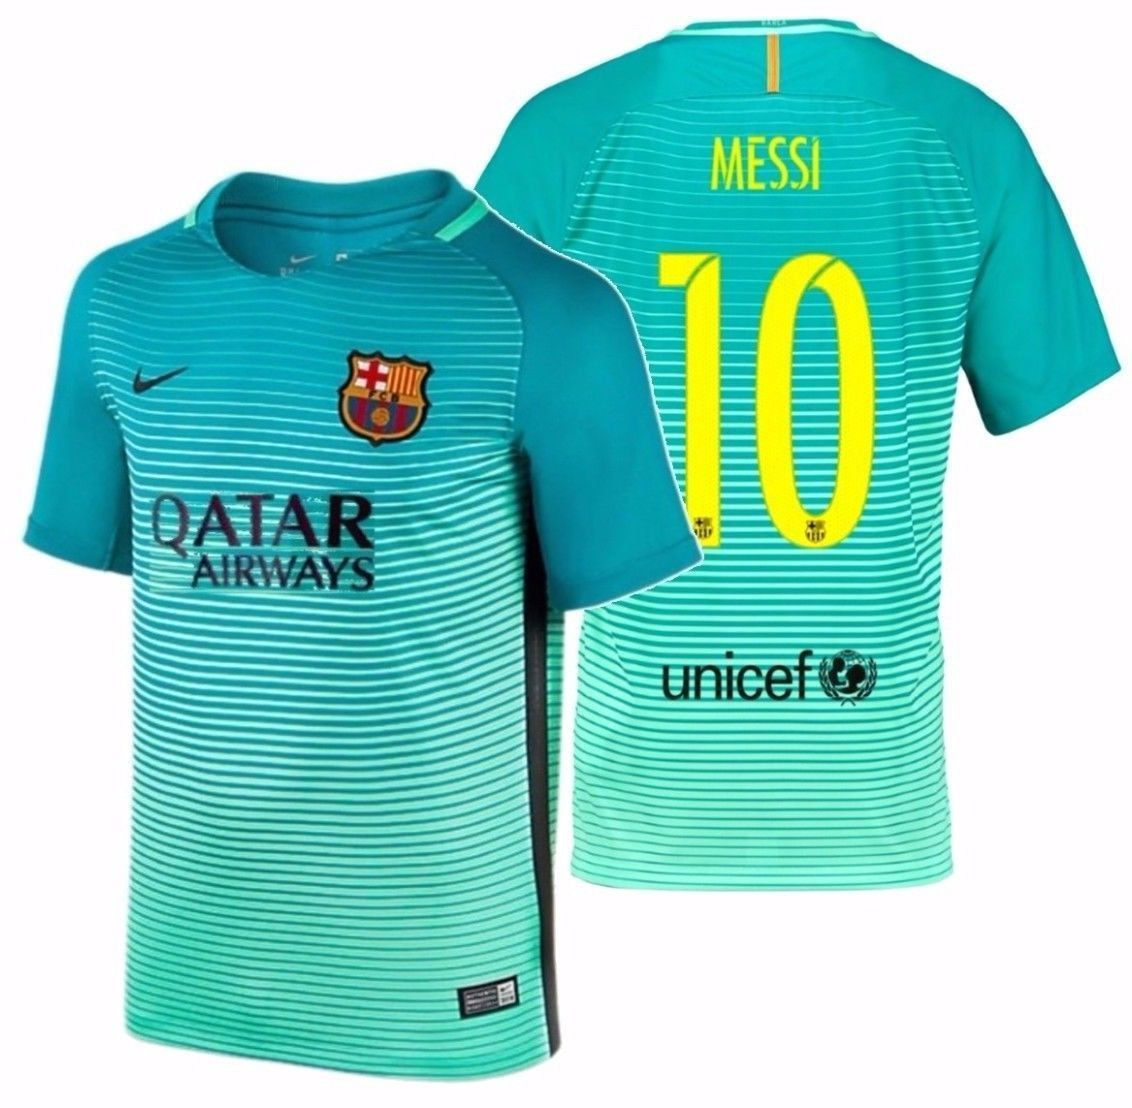 size 40 72a5a ae7d9 lionel messi youth soccer jersey